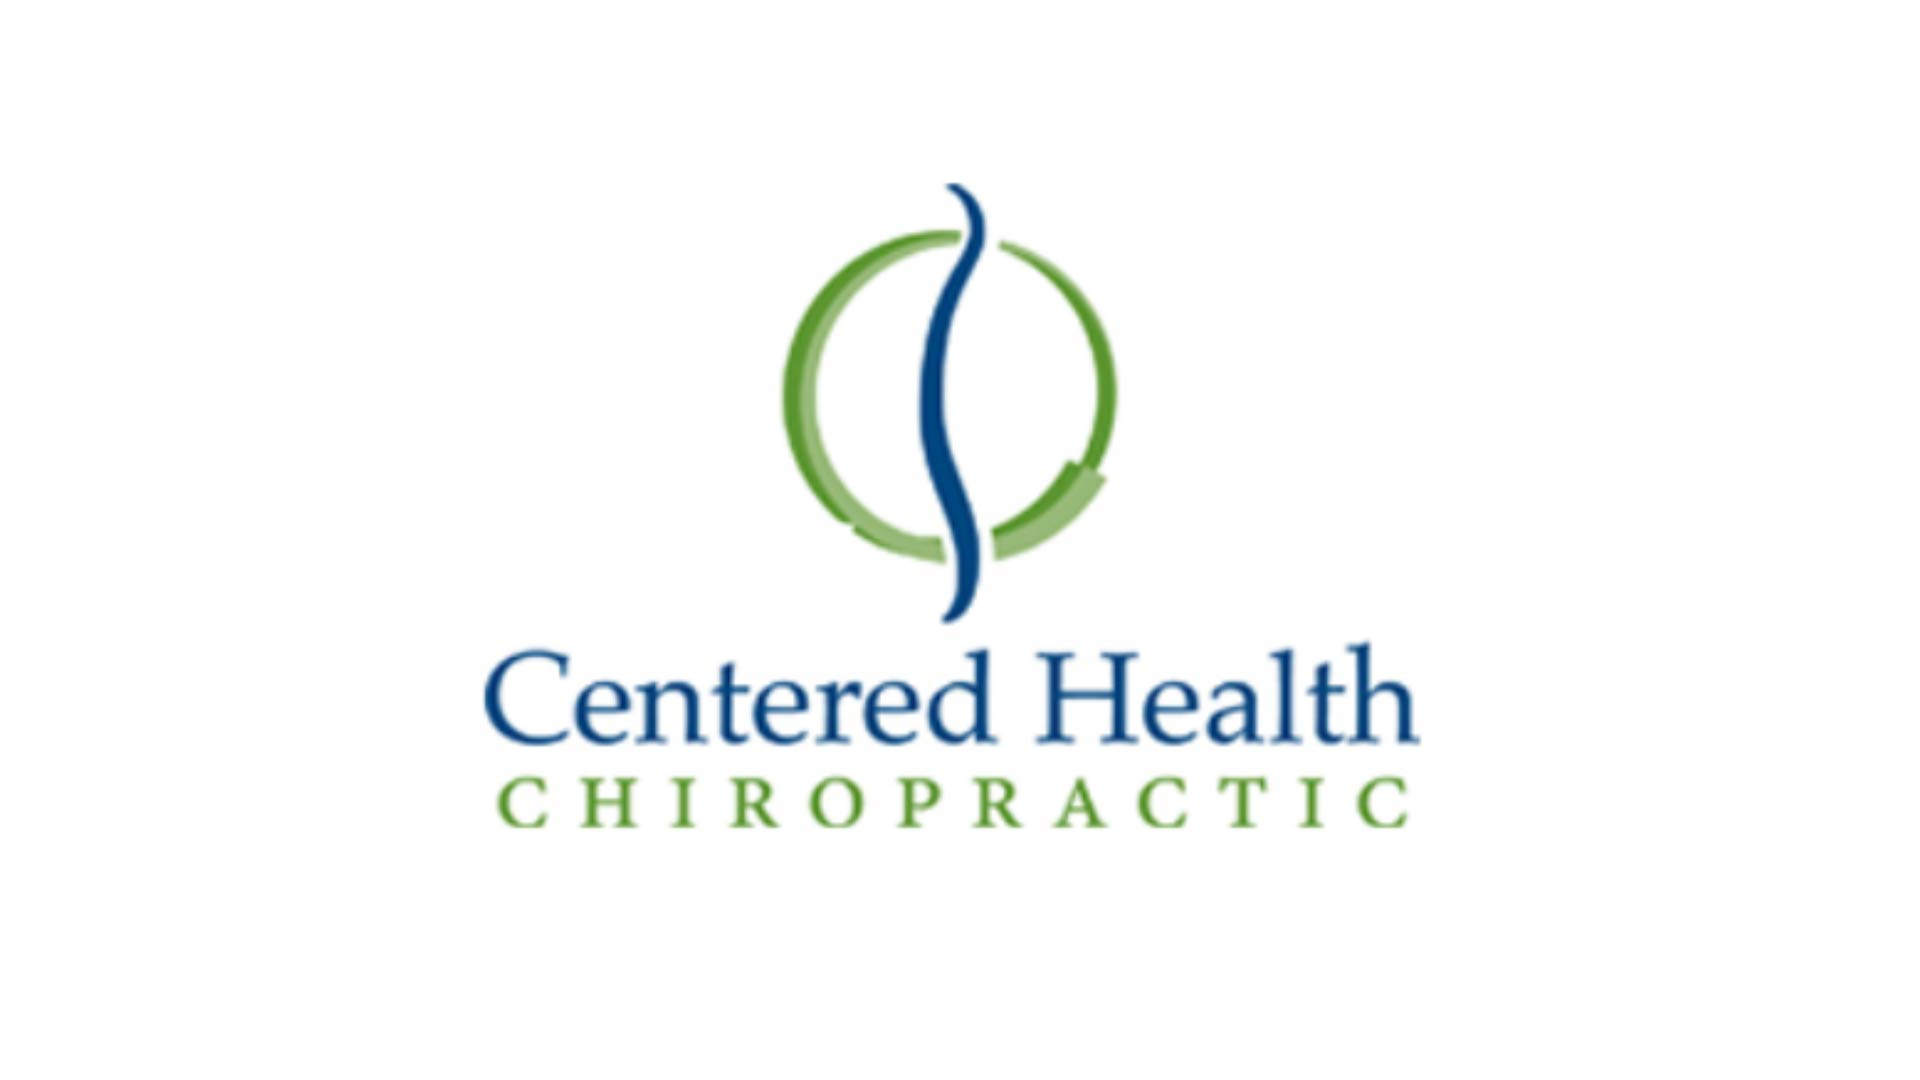 Centered Health Chiropractic